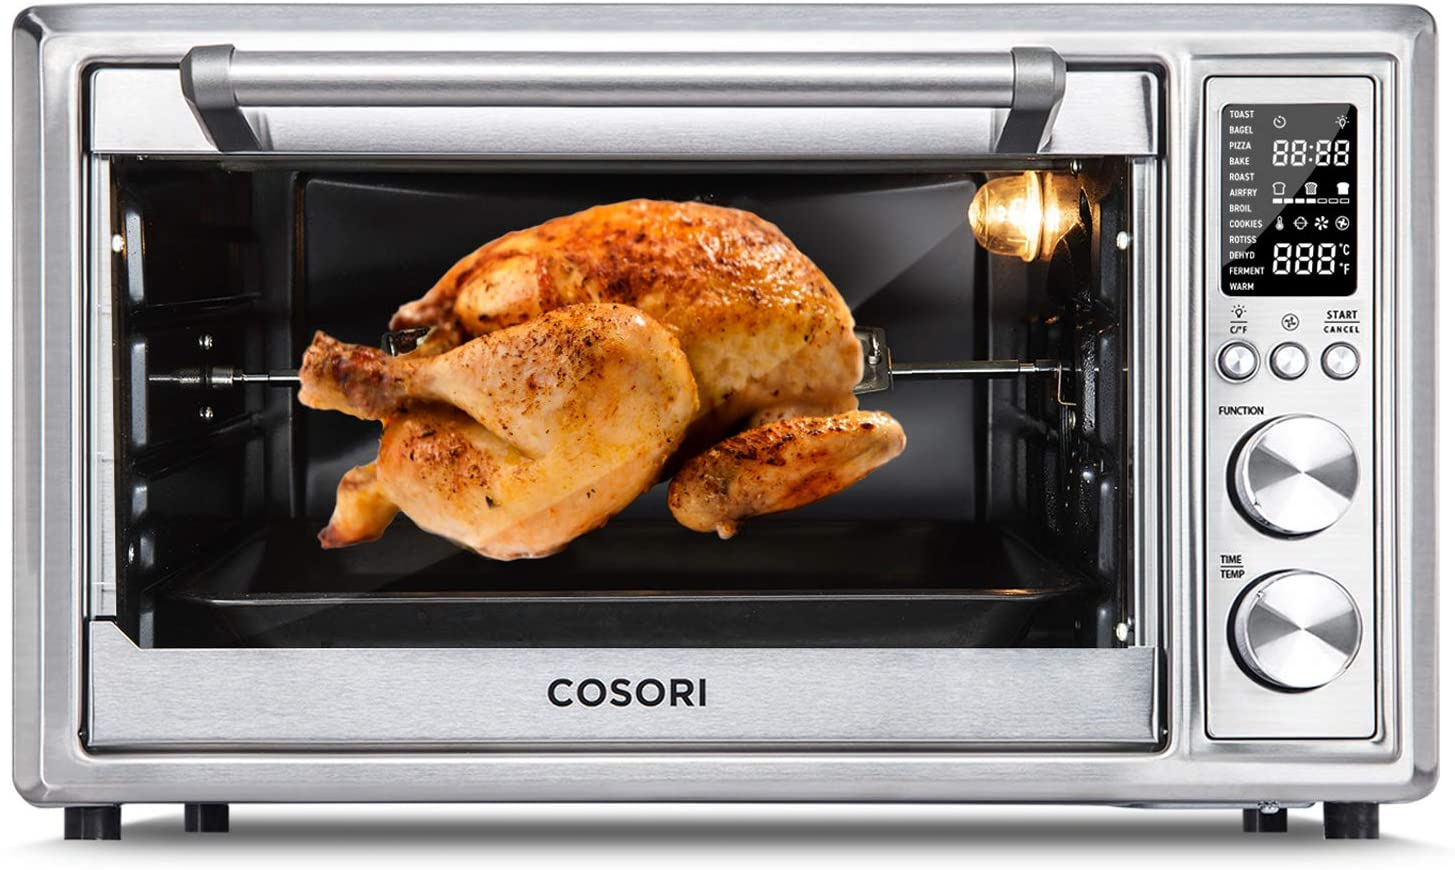 COSORI air fryer toaster oven small appliance